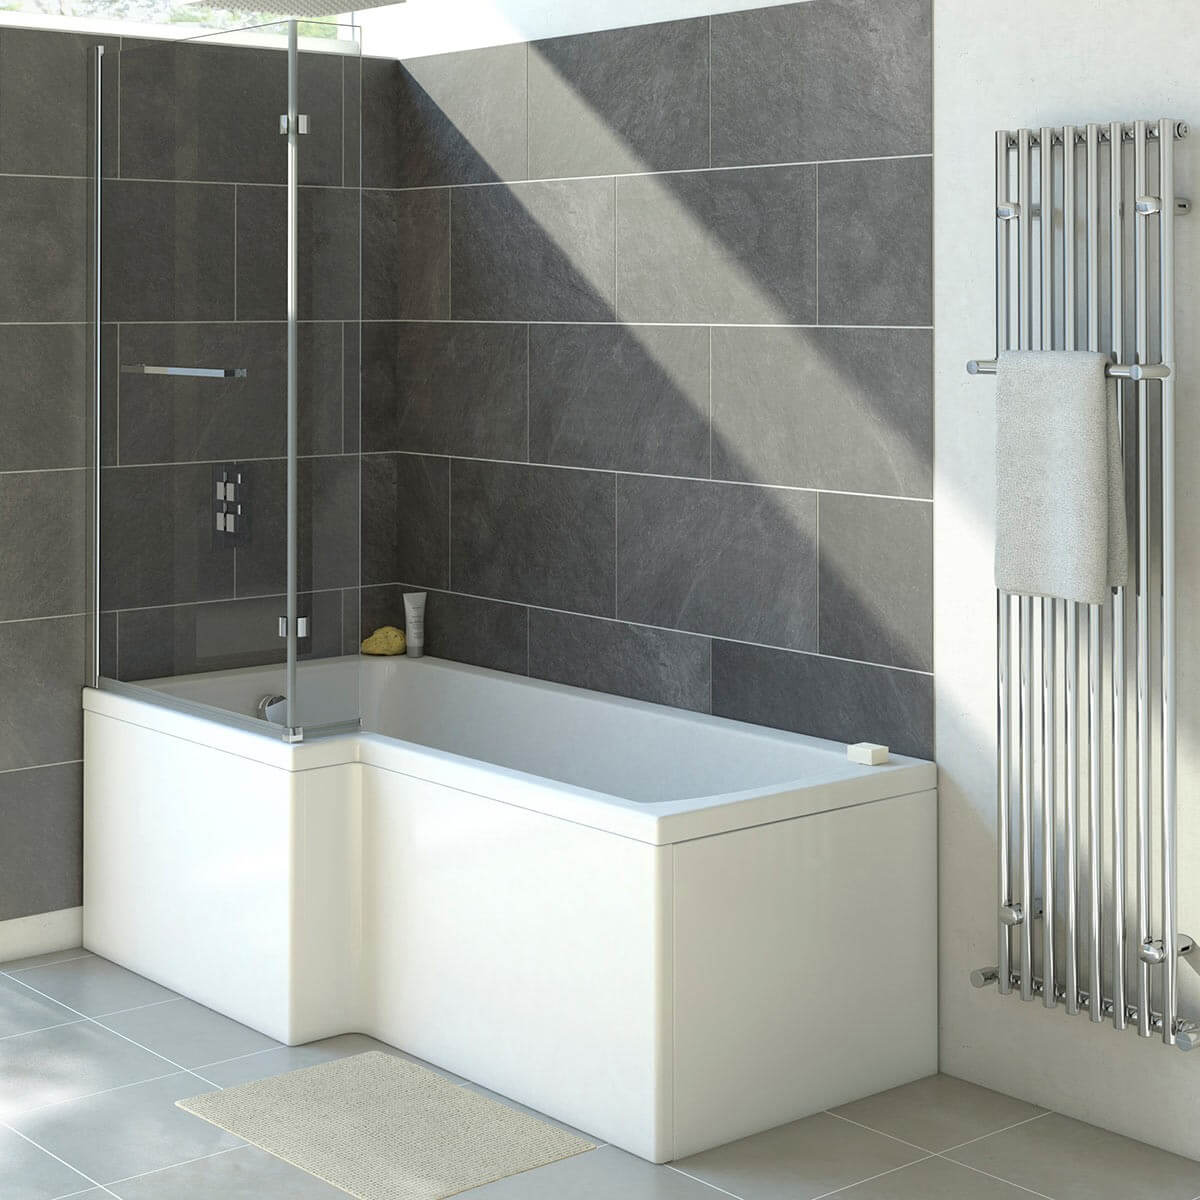 converting a bathtub to a walk in shower options litt 39 s plumbling